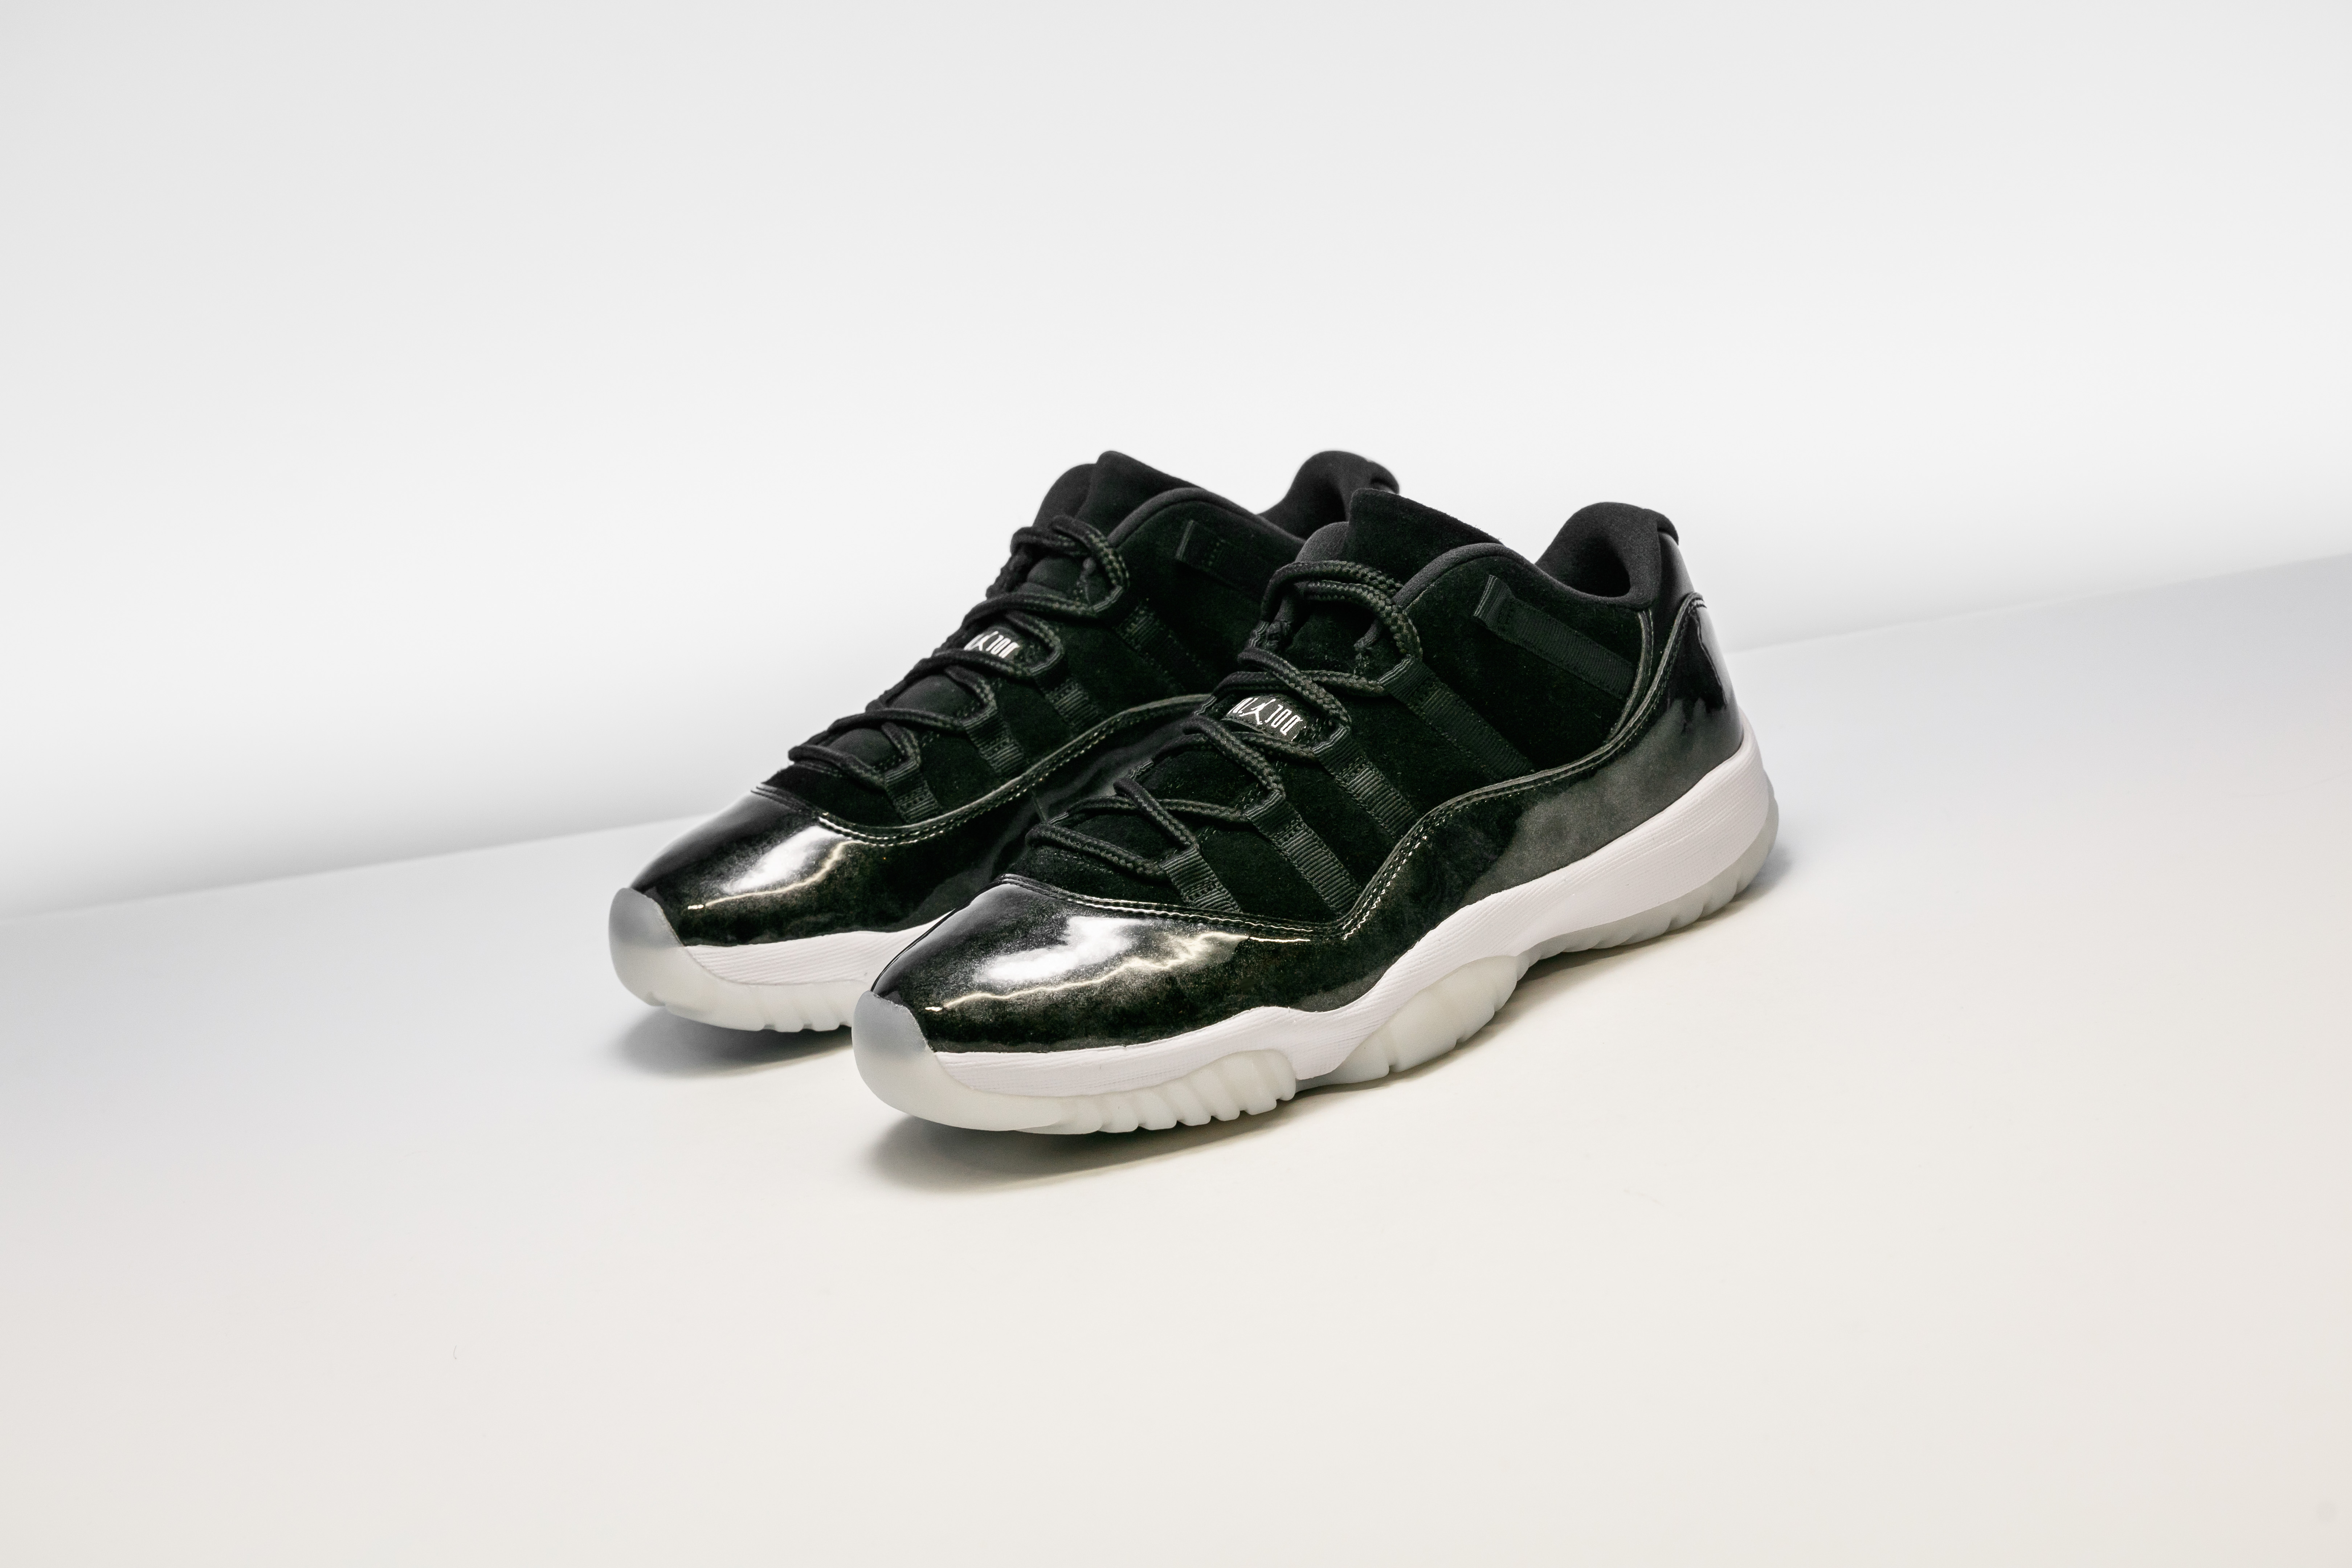 """cf57124ee54c00 Forget release day this Saturday. Stadium Goods is making today the  unofficial release day for Air Jordan 11 Low """"Barons."""" Shop your size now –  for retail!"""